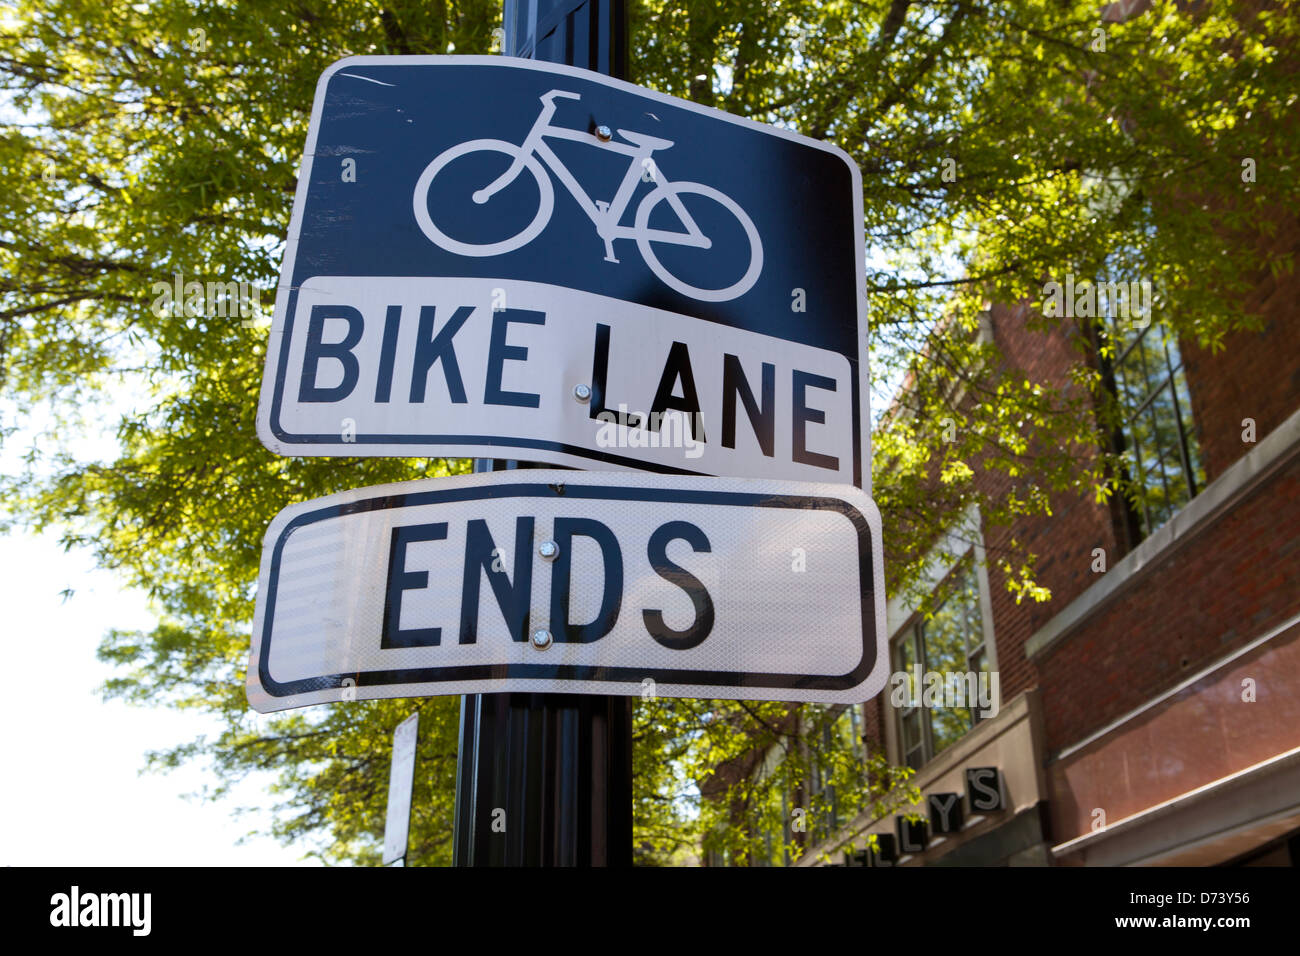 End of bike lane sign - USA - Stock Image